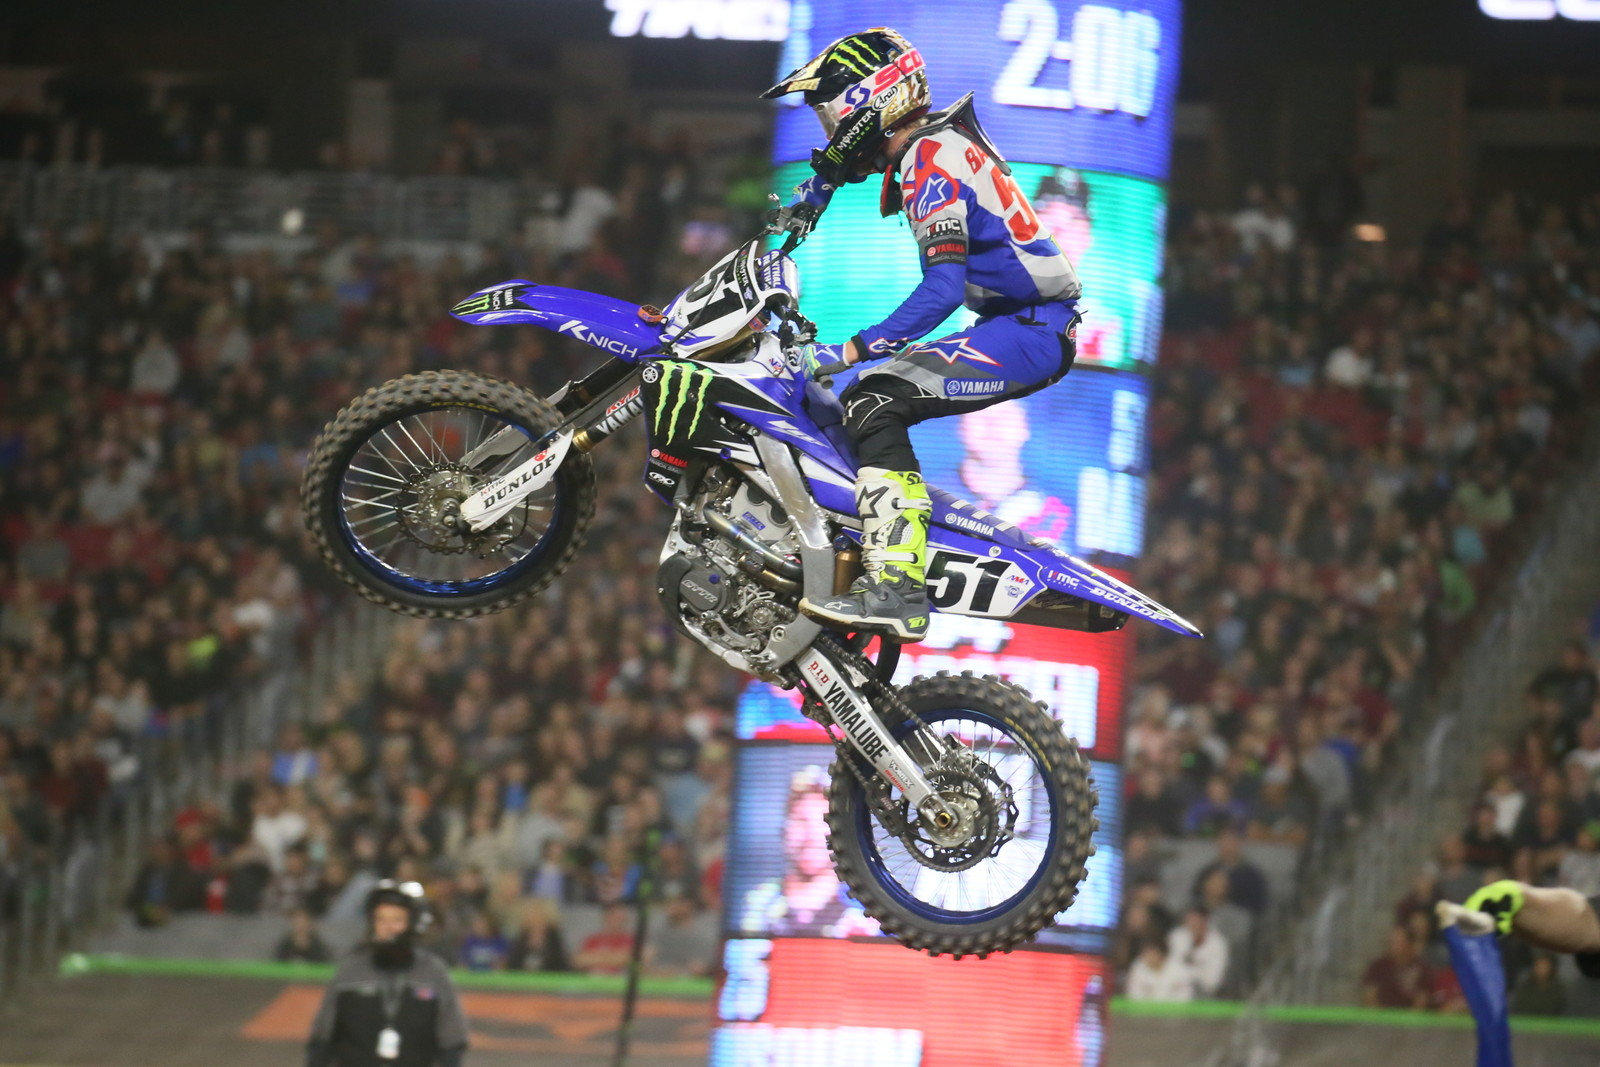 Justin Barcia now had three podiums in four tries this year.